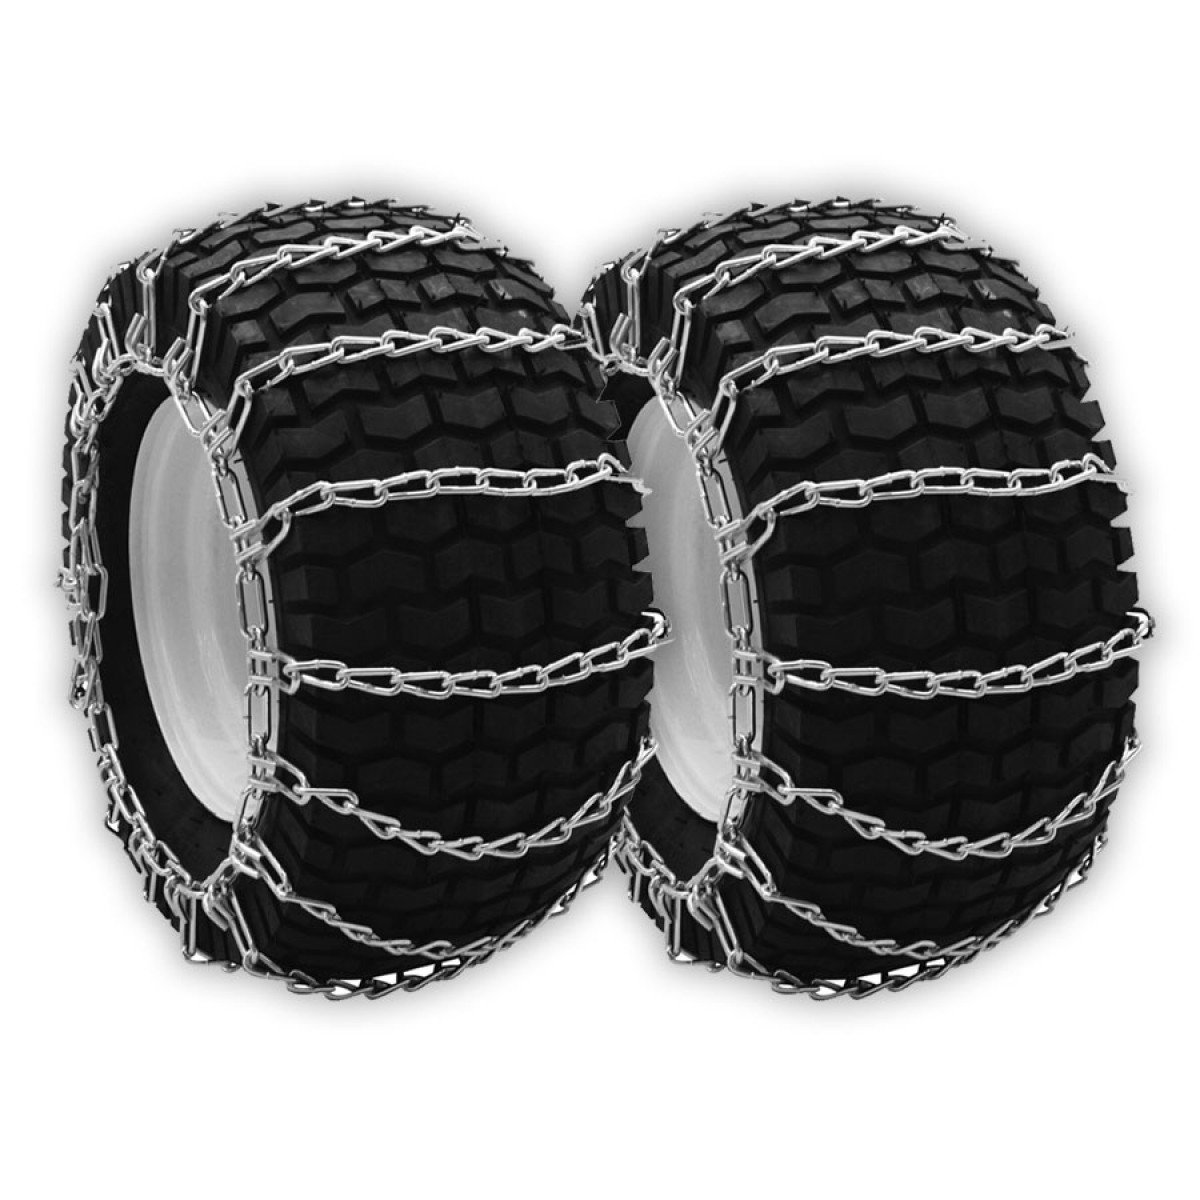 DIY PARTS Depot Tire Chain Fits Tire size 22x8x12, 22x9.50x12